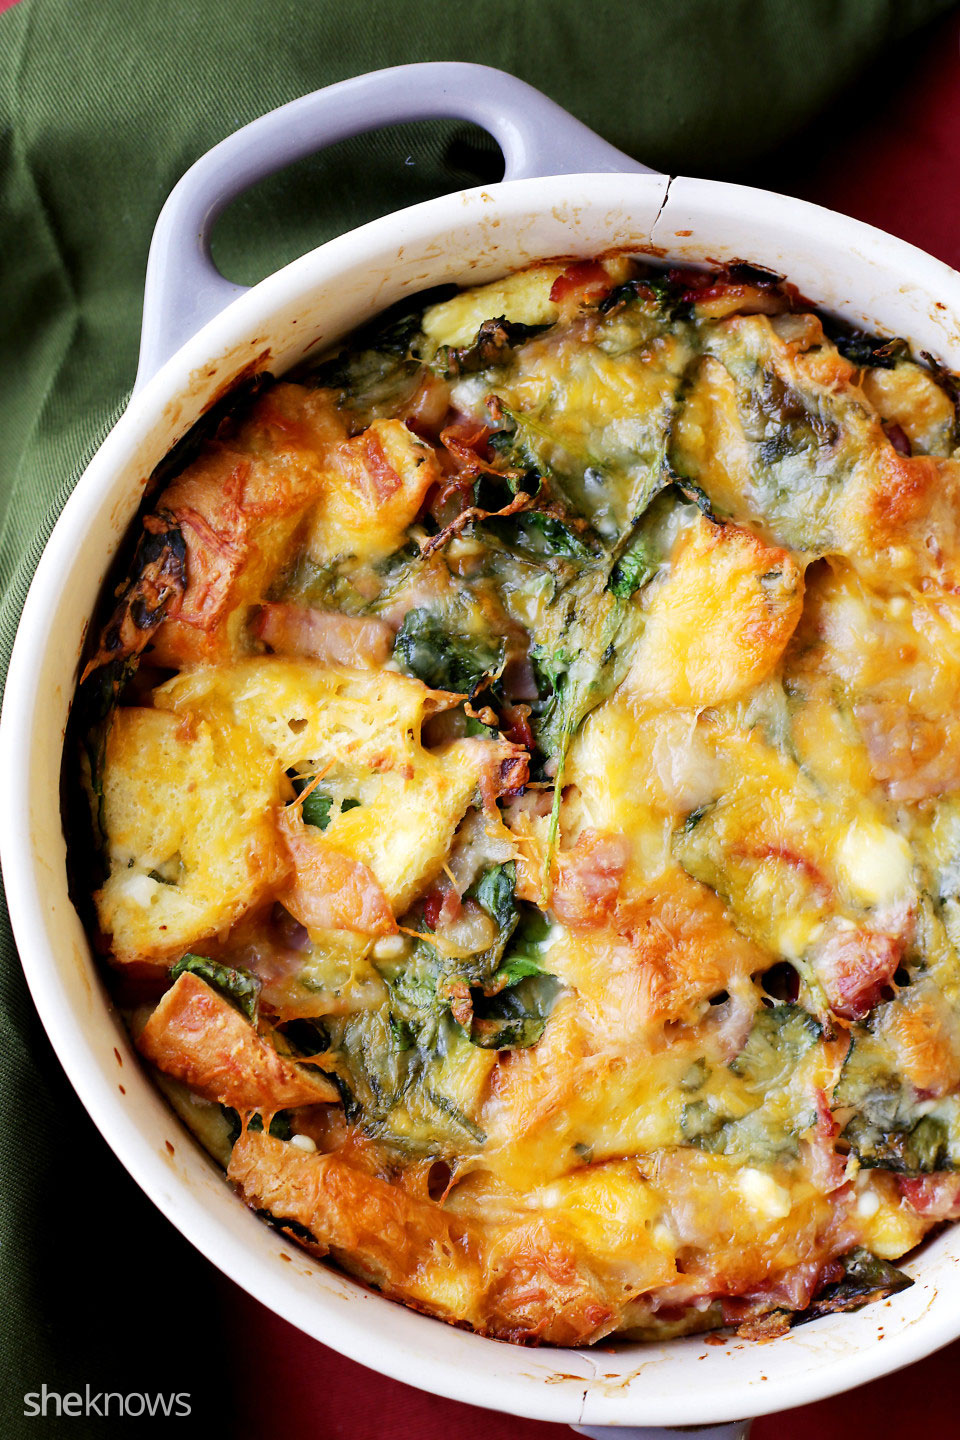 Make prep (and cleanup!) easier by putting all those ingredients in a casserole dish and cooking them up in the morning. Some mozzarella cheese takes the taste over the top. 5.